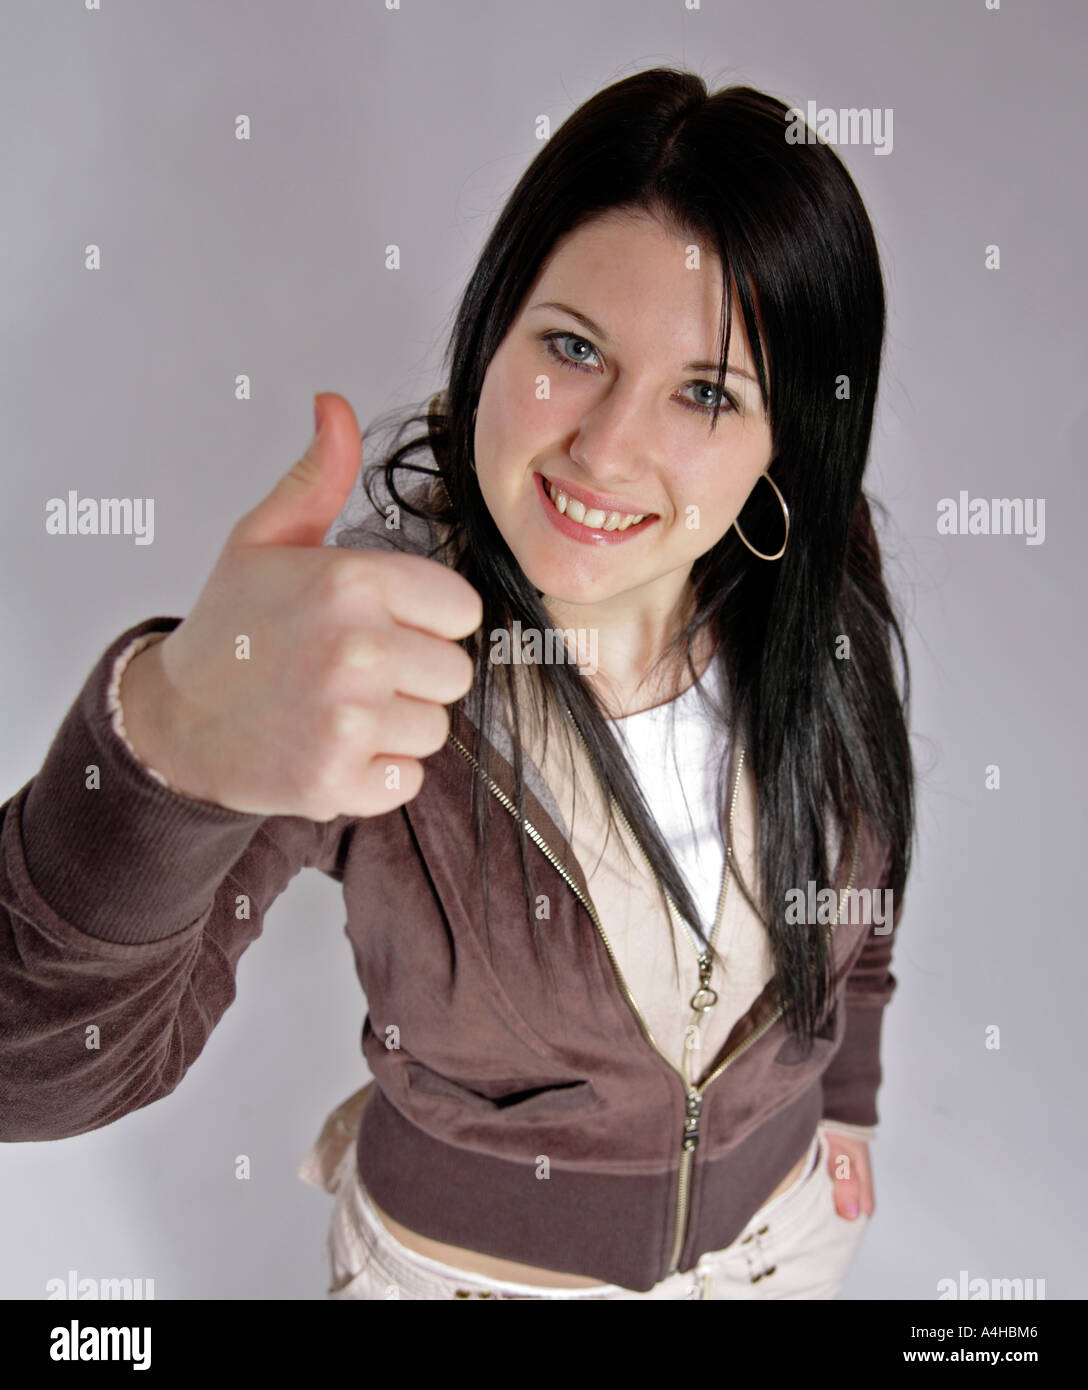 Young woman aged 16 with black hair gives the thumbs up - Stock Image